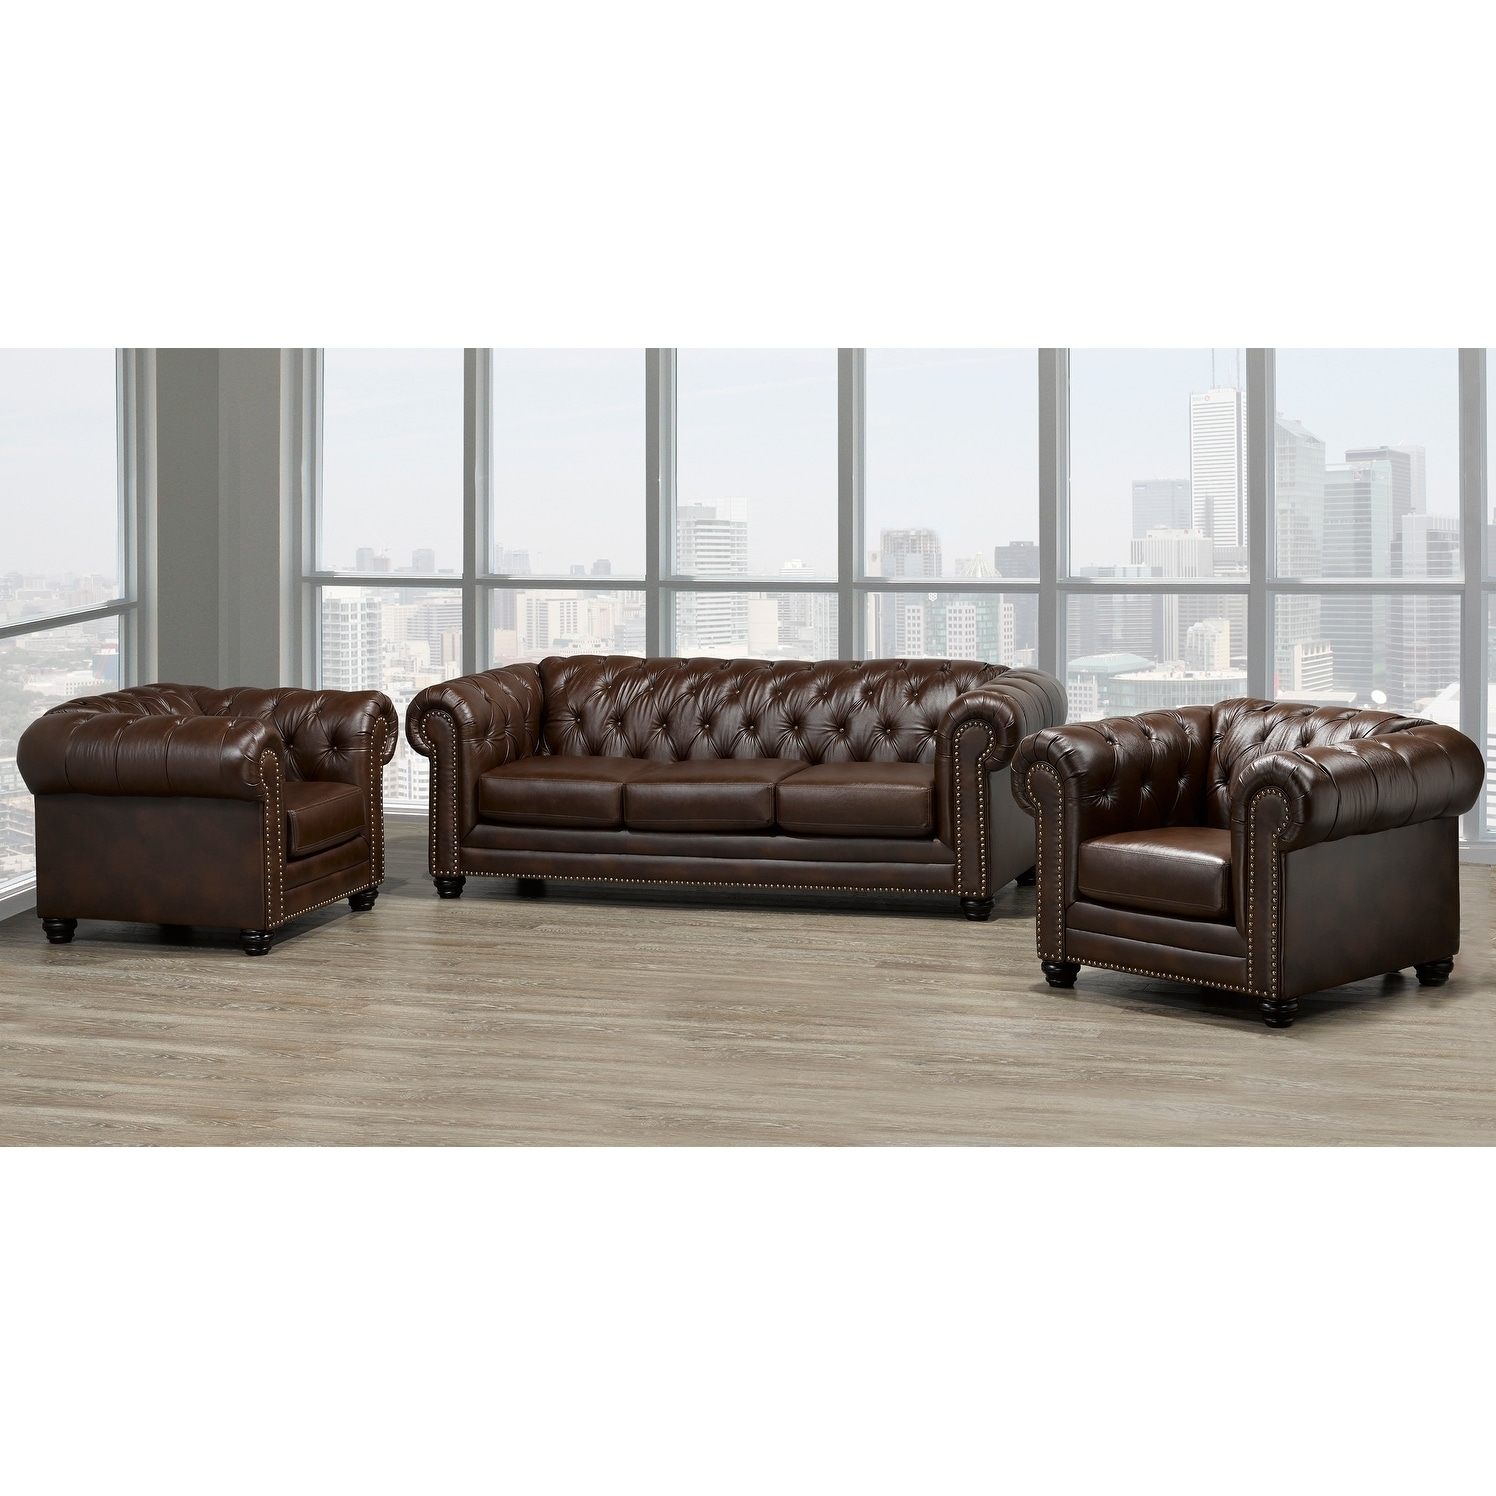 Amazing Buy New Products Living Room Furniture Sets Online At Cjindustries Chair Design For Home Cjindustriesco